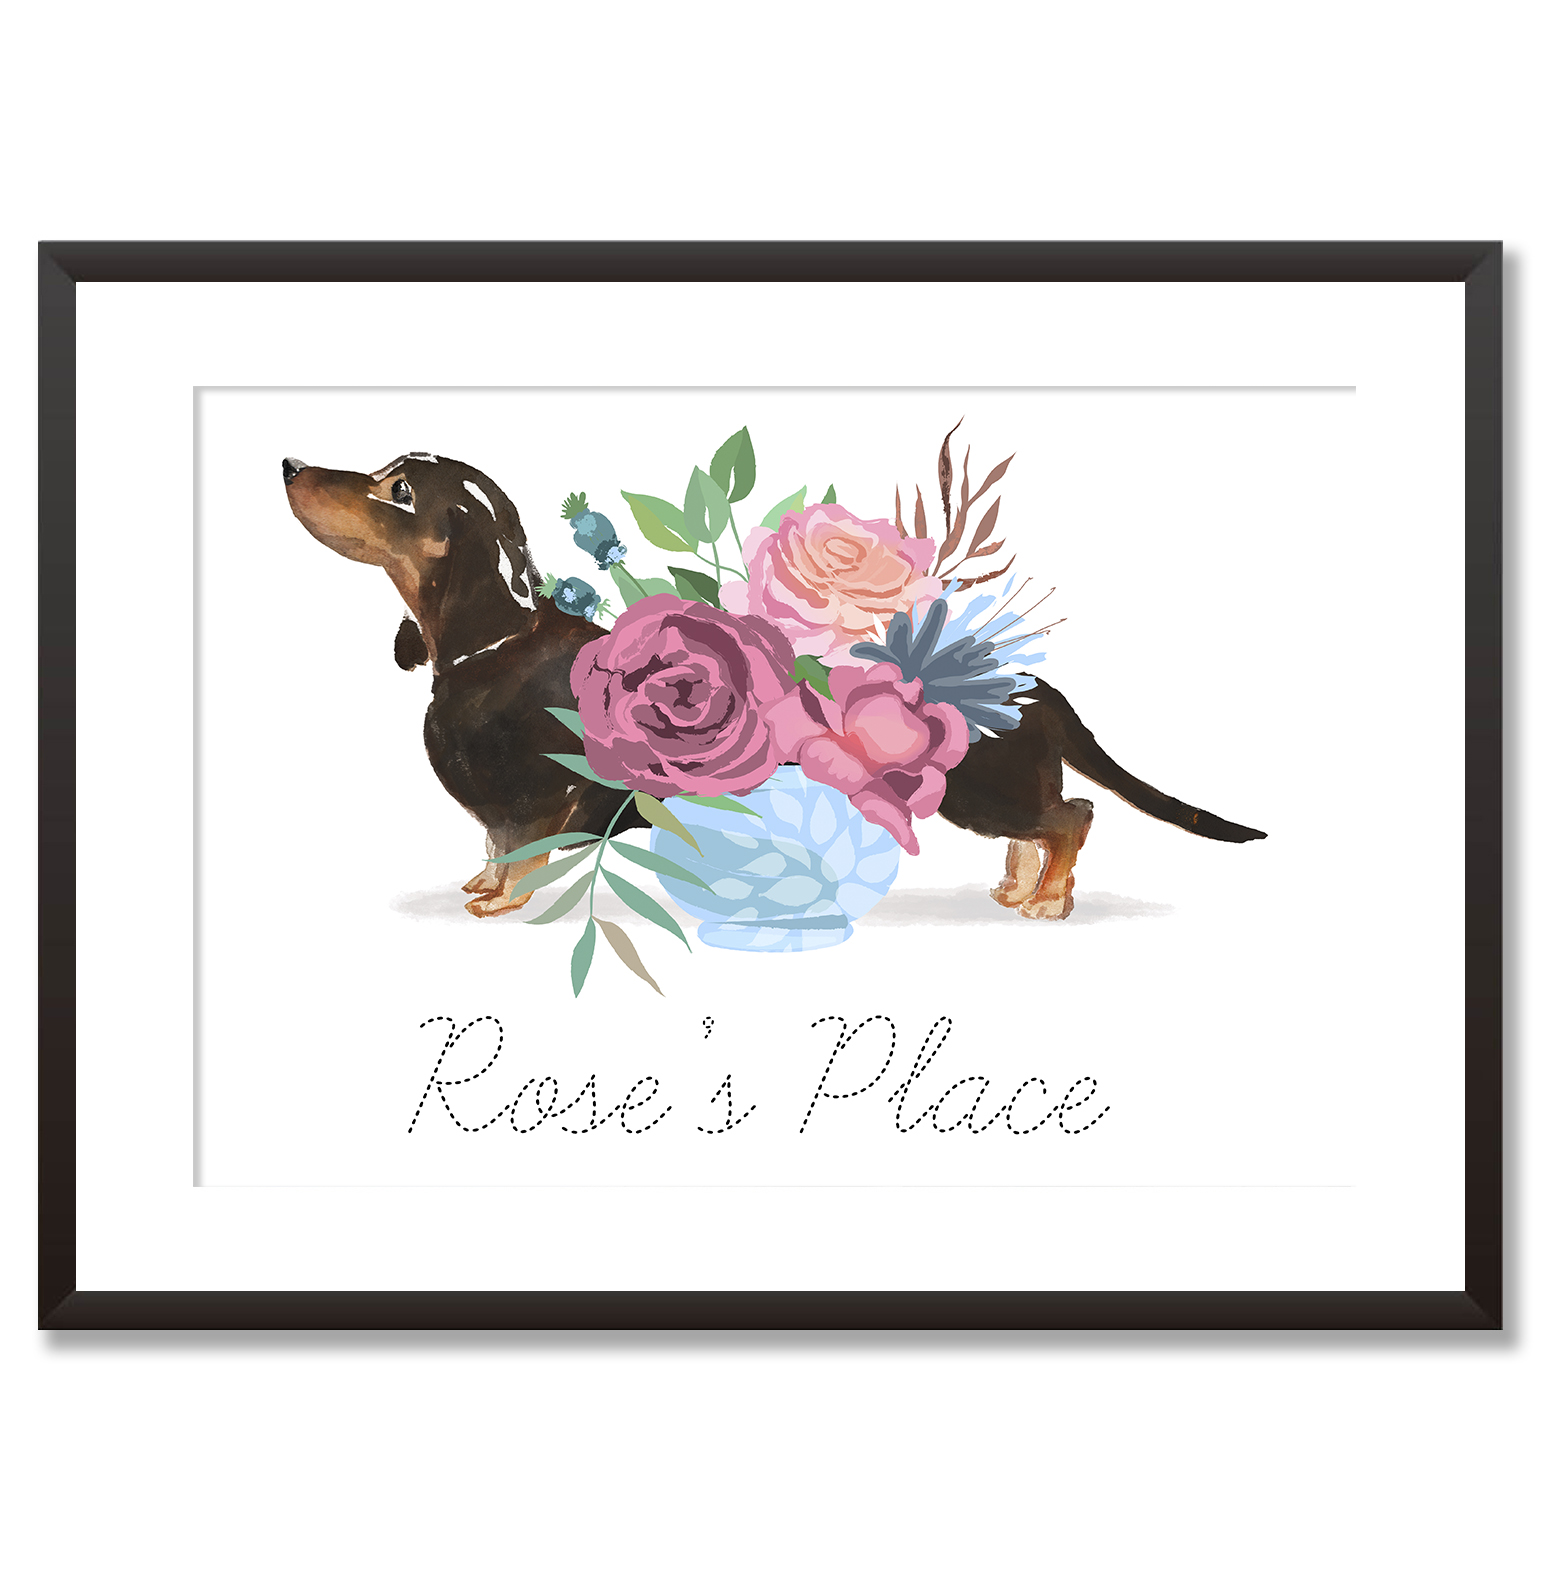 Personalised Dachshund Dog Flower Vase by Mode Prints Black Frame.jpg